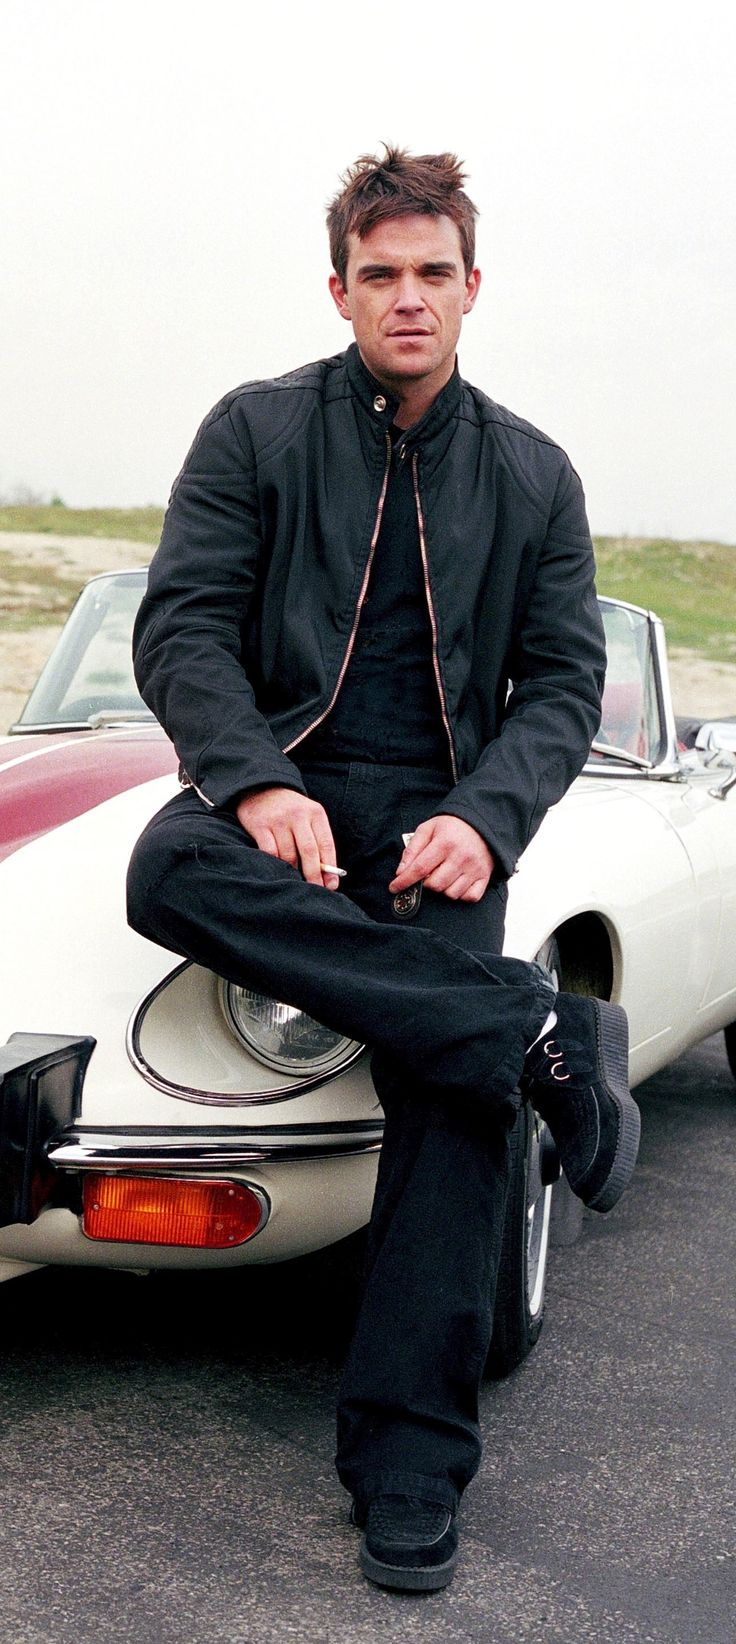 Robbie Williams <3  Back in the day, before the silver streak!